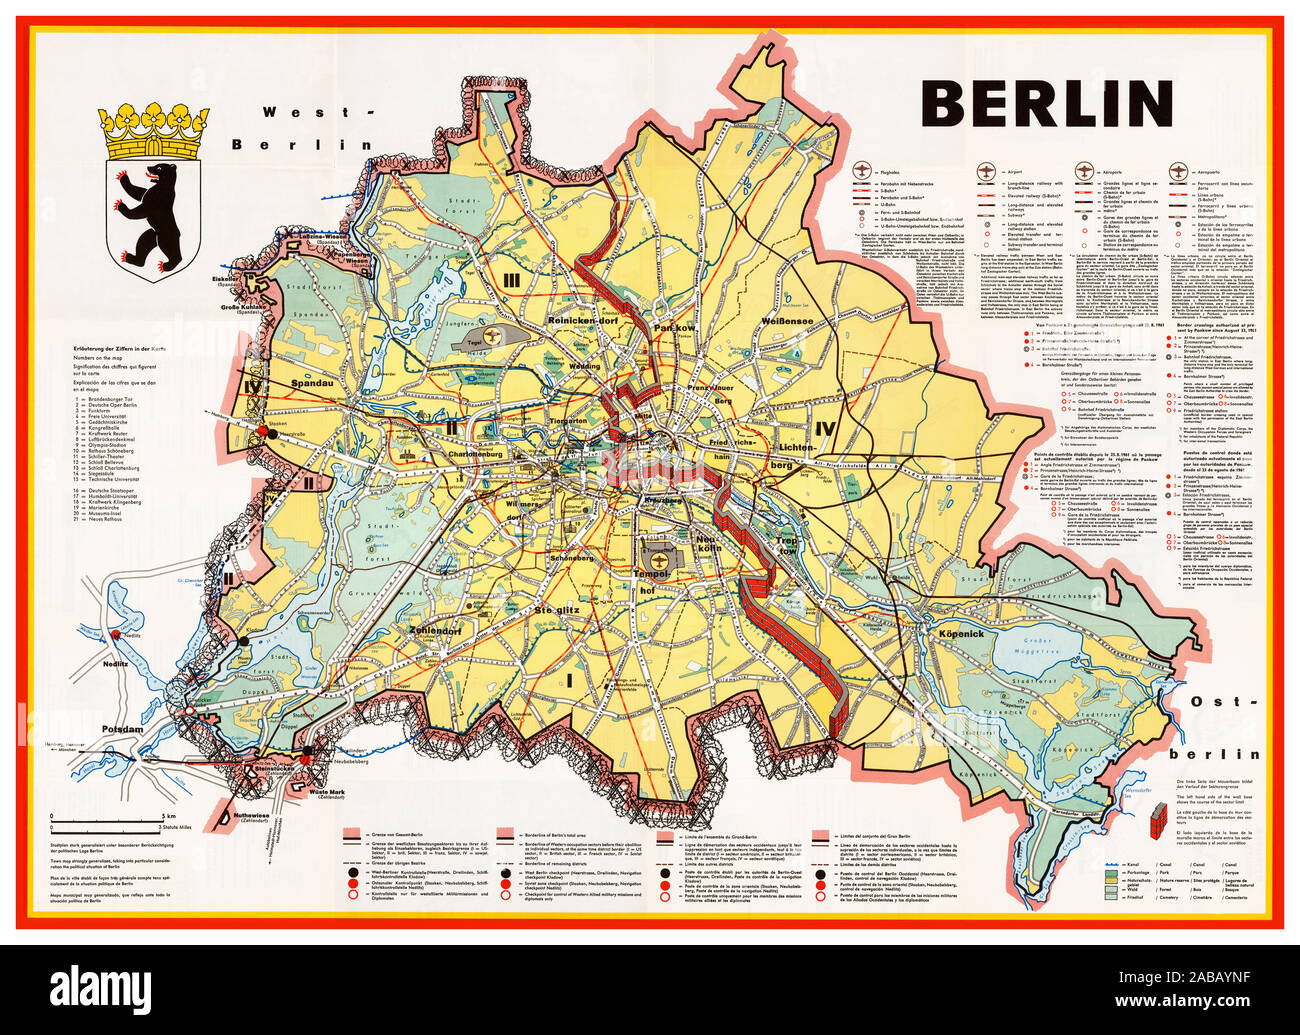 Berlin Map Stock Photos Berlin Map Stock Images Alamy